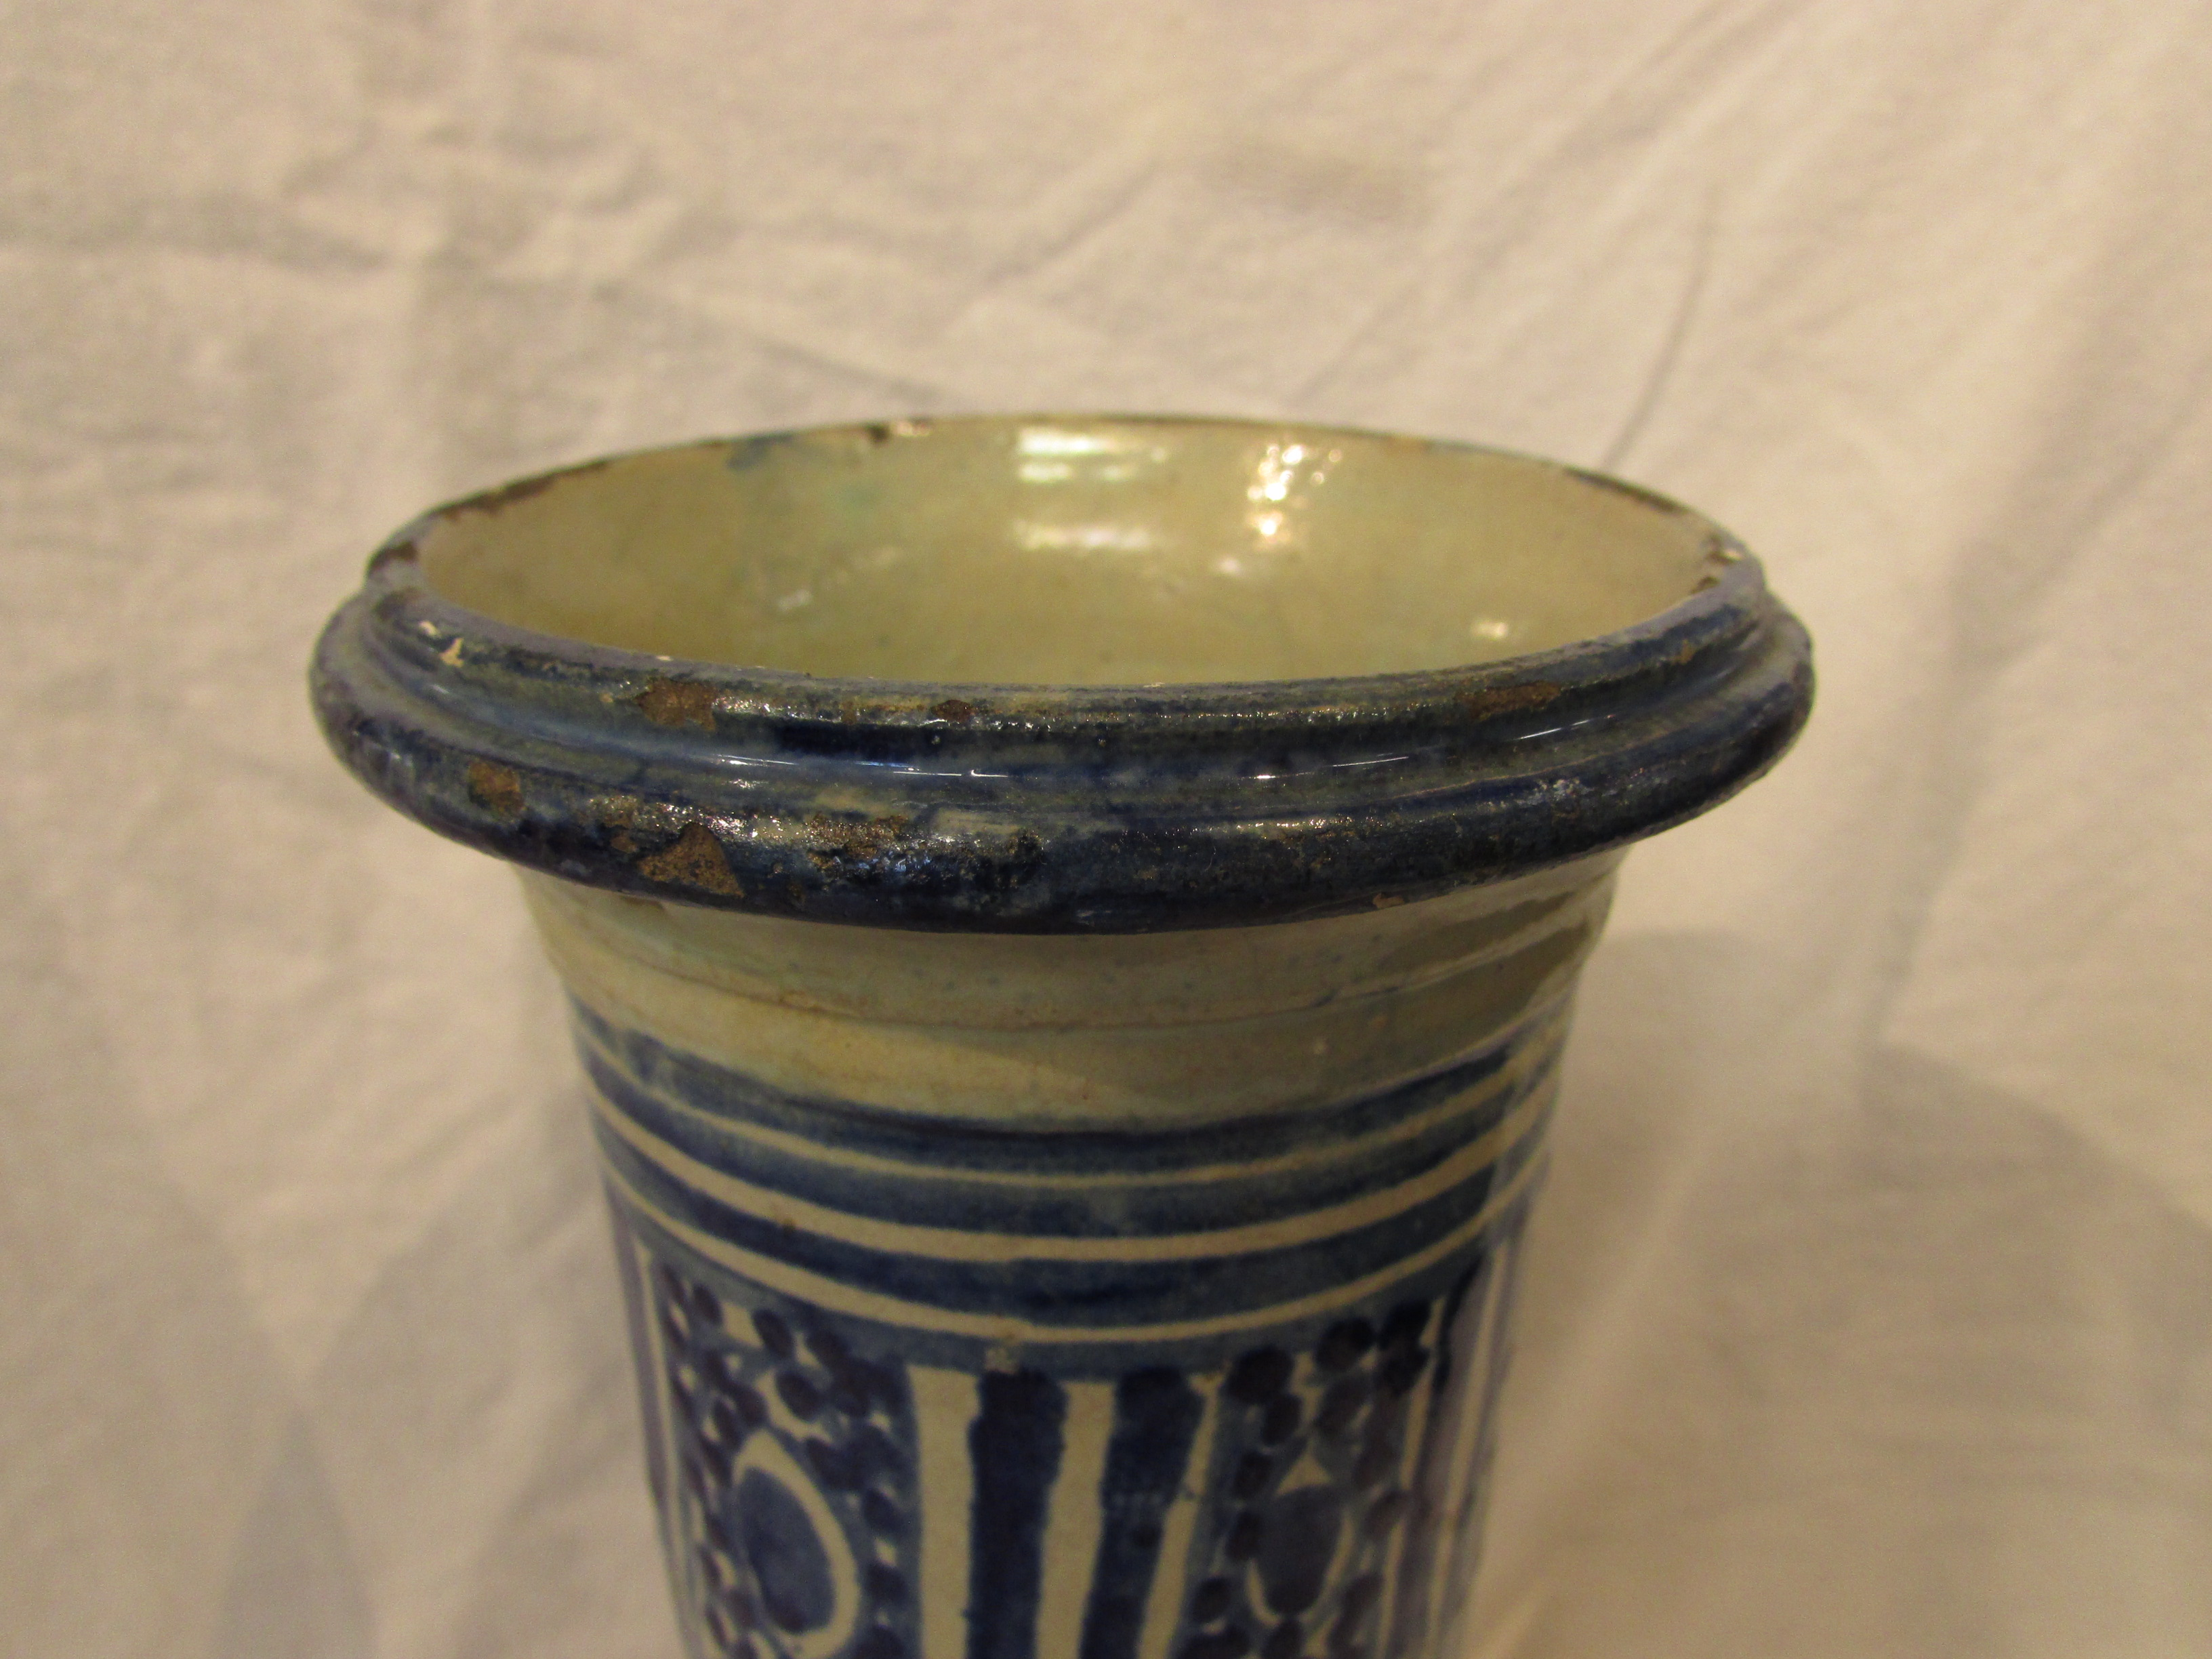 Lot 42 - A pottery cylinder of waisted form and open to both ends, glazed in blue on white with a stylized